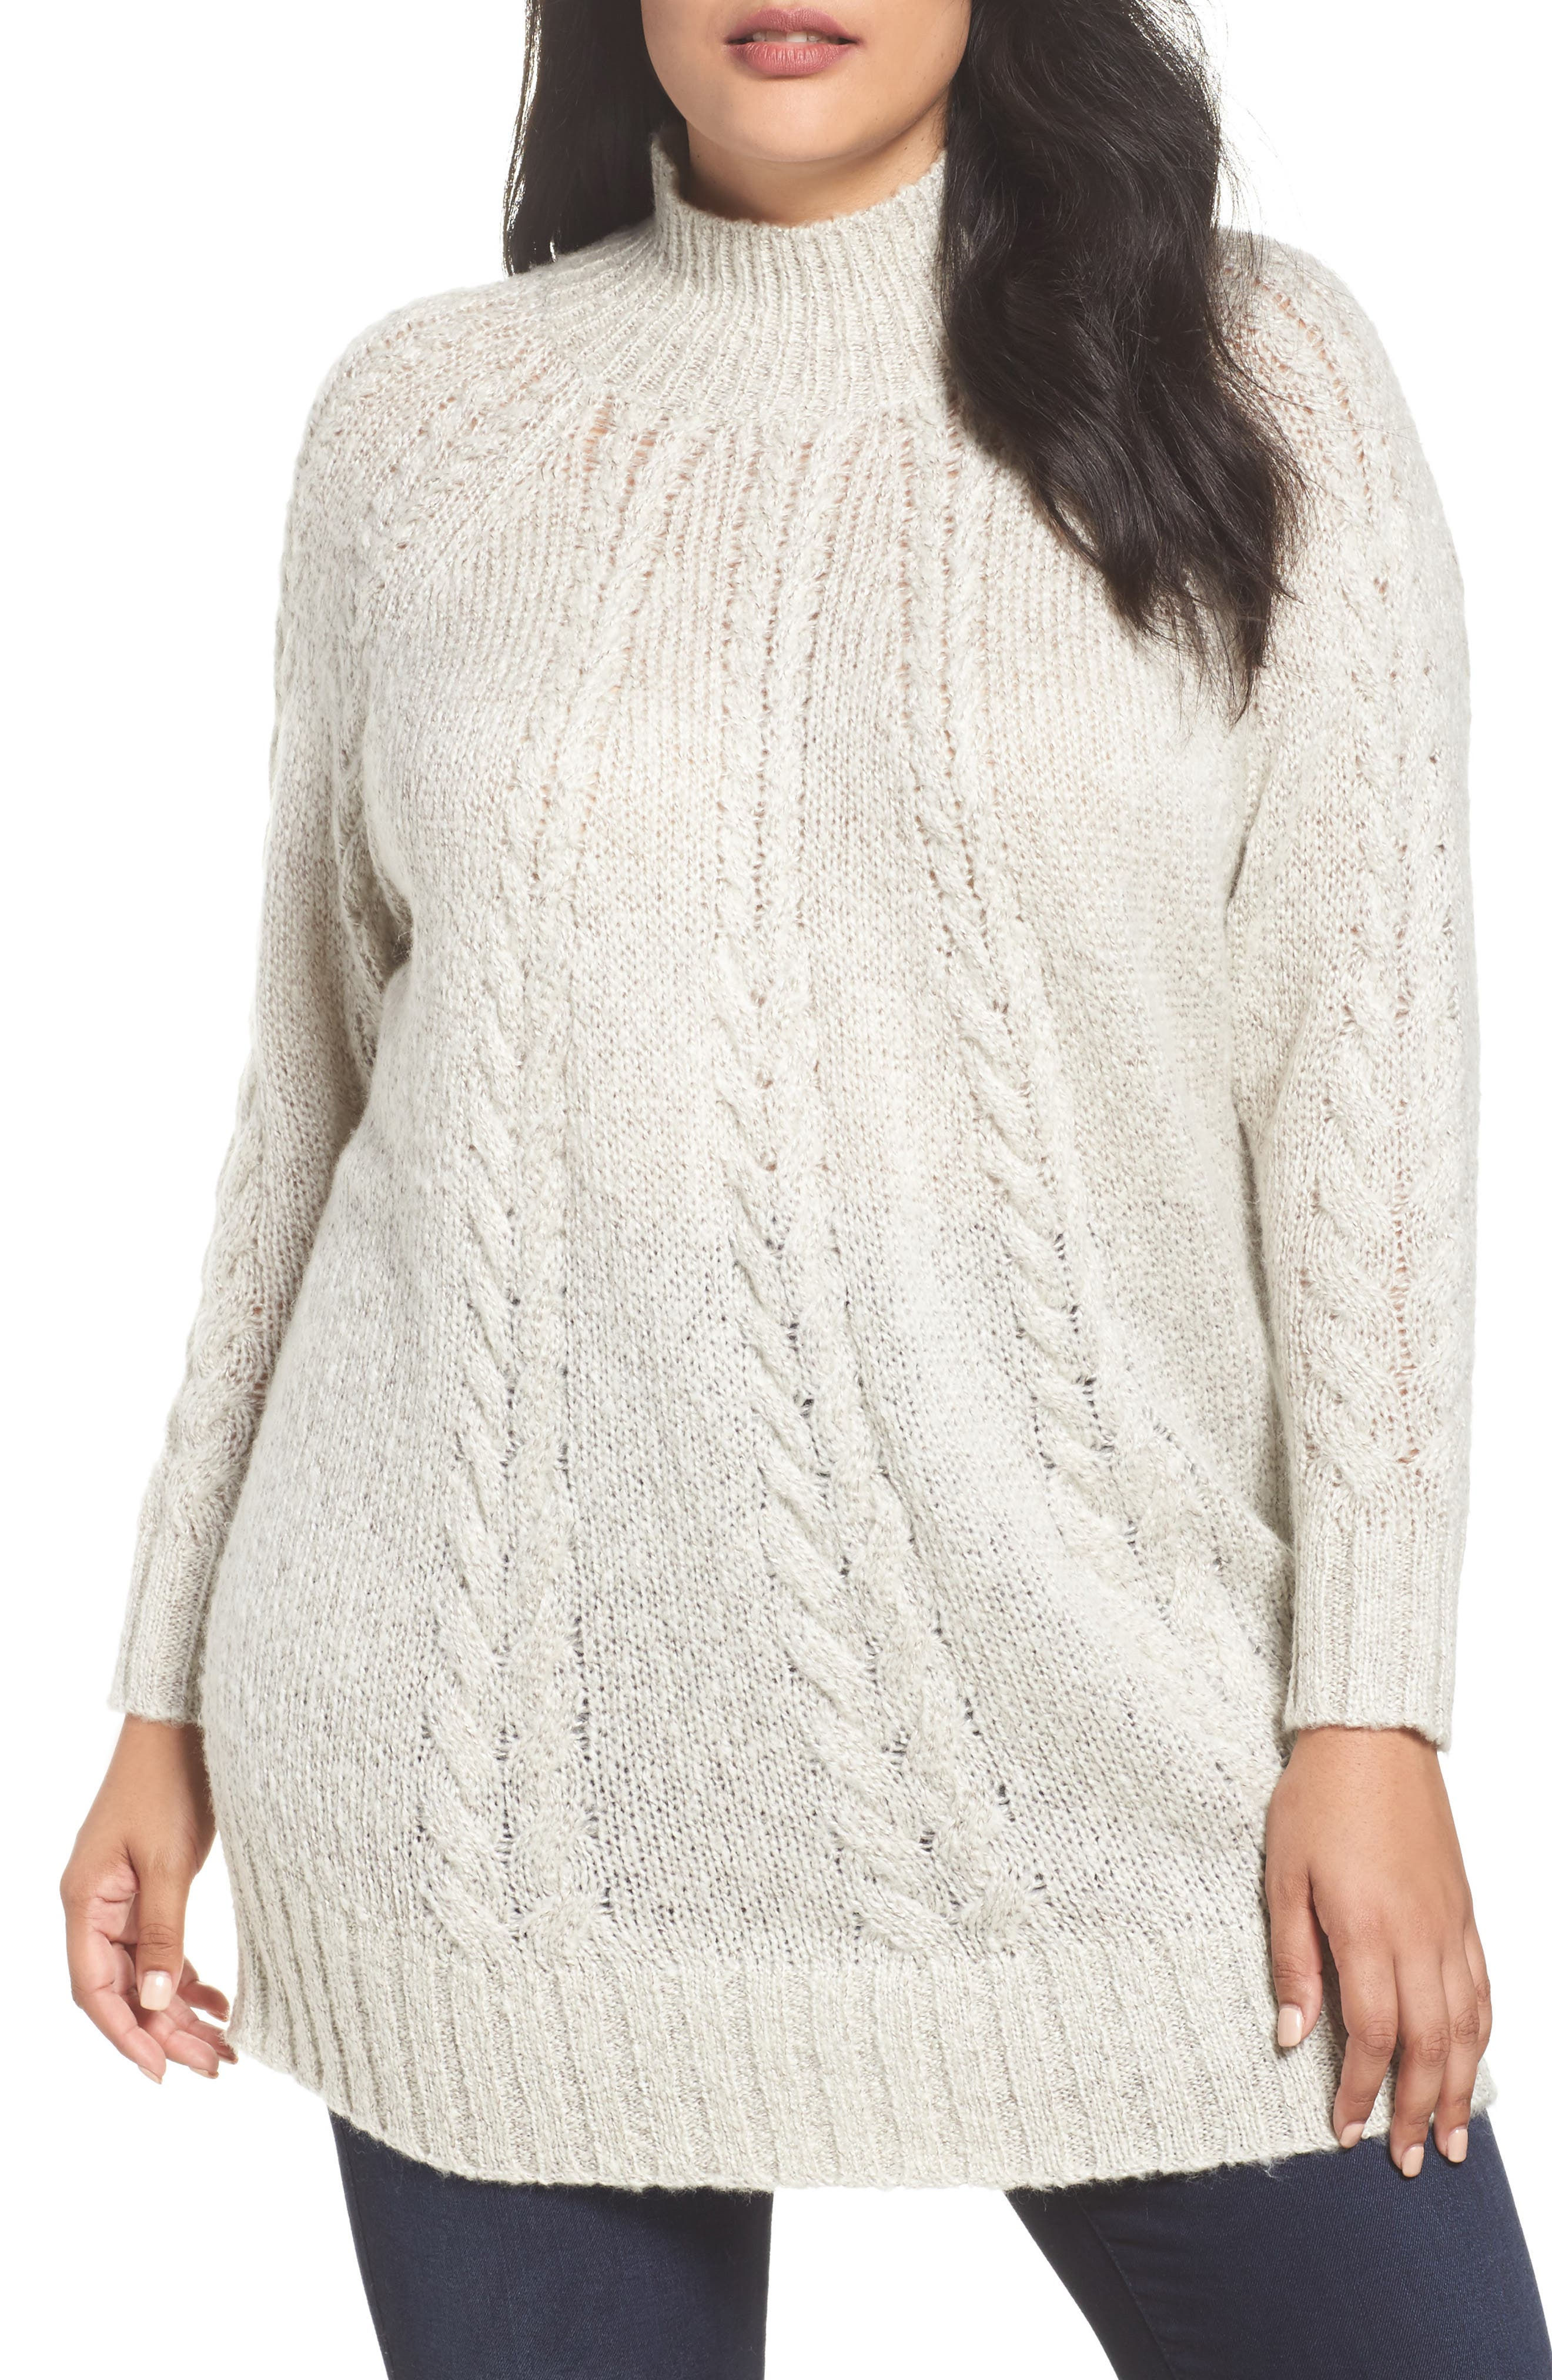 Cable Knit Tunic Sweater,                             Main thumbnail 1, color,                             BEIGE OATMEAL LIGHT HEATHER